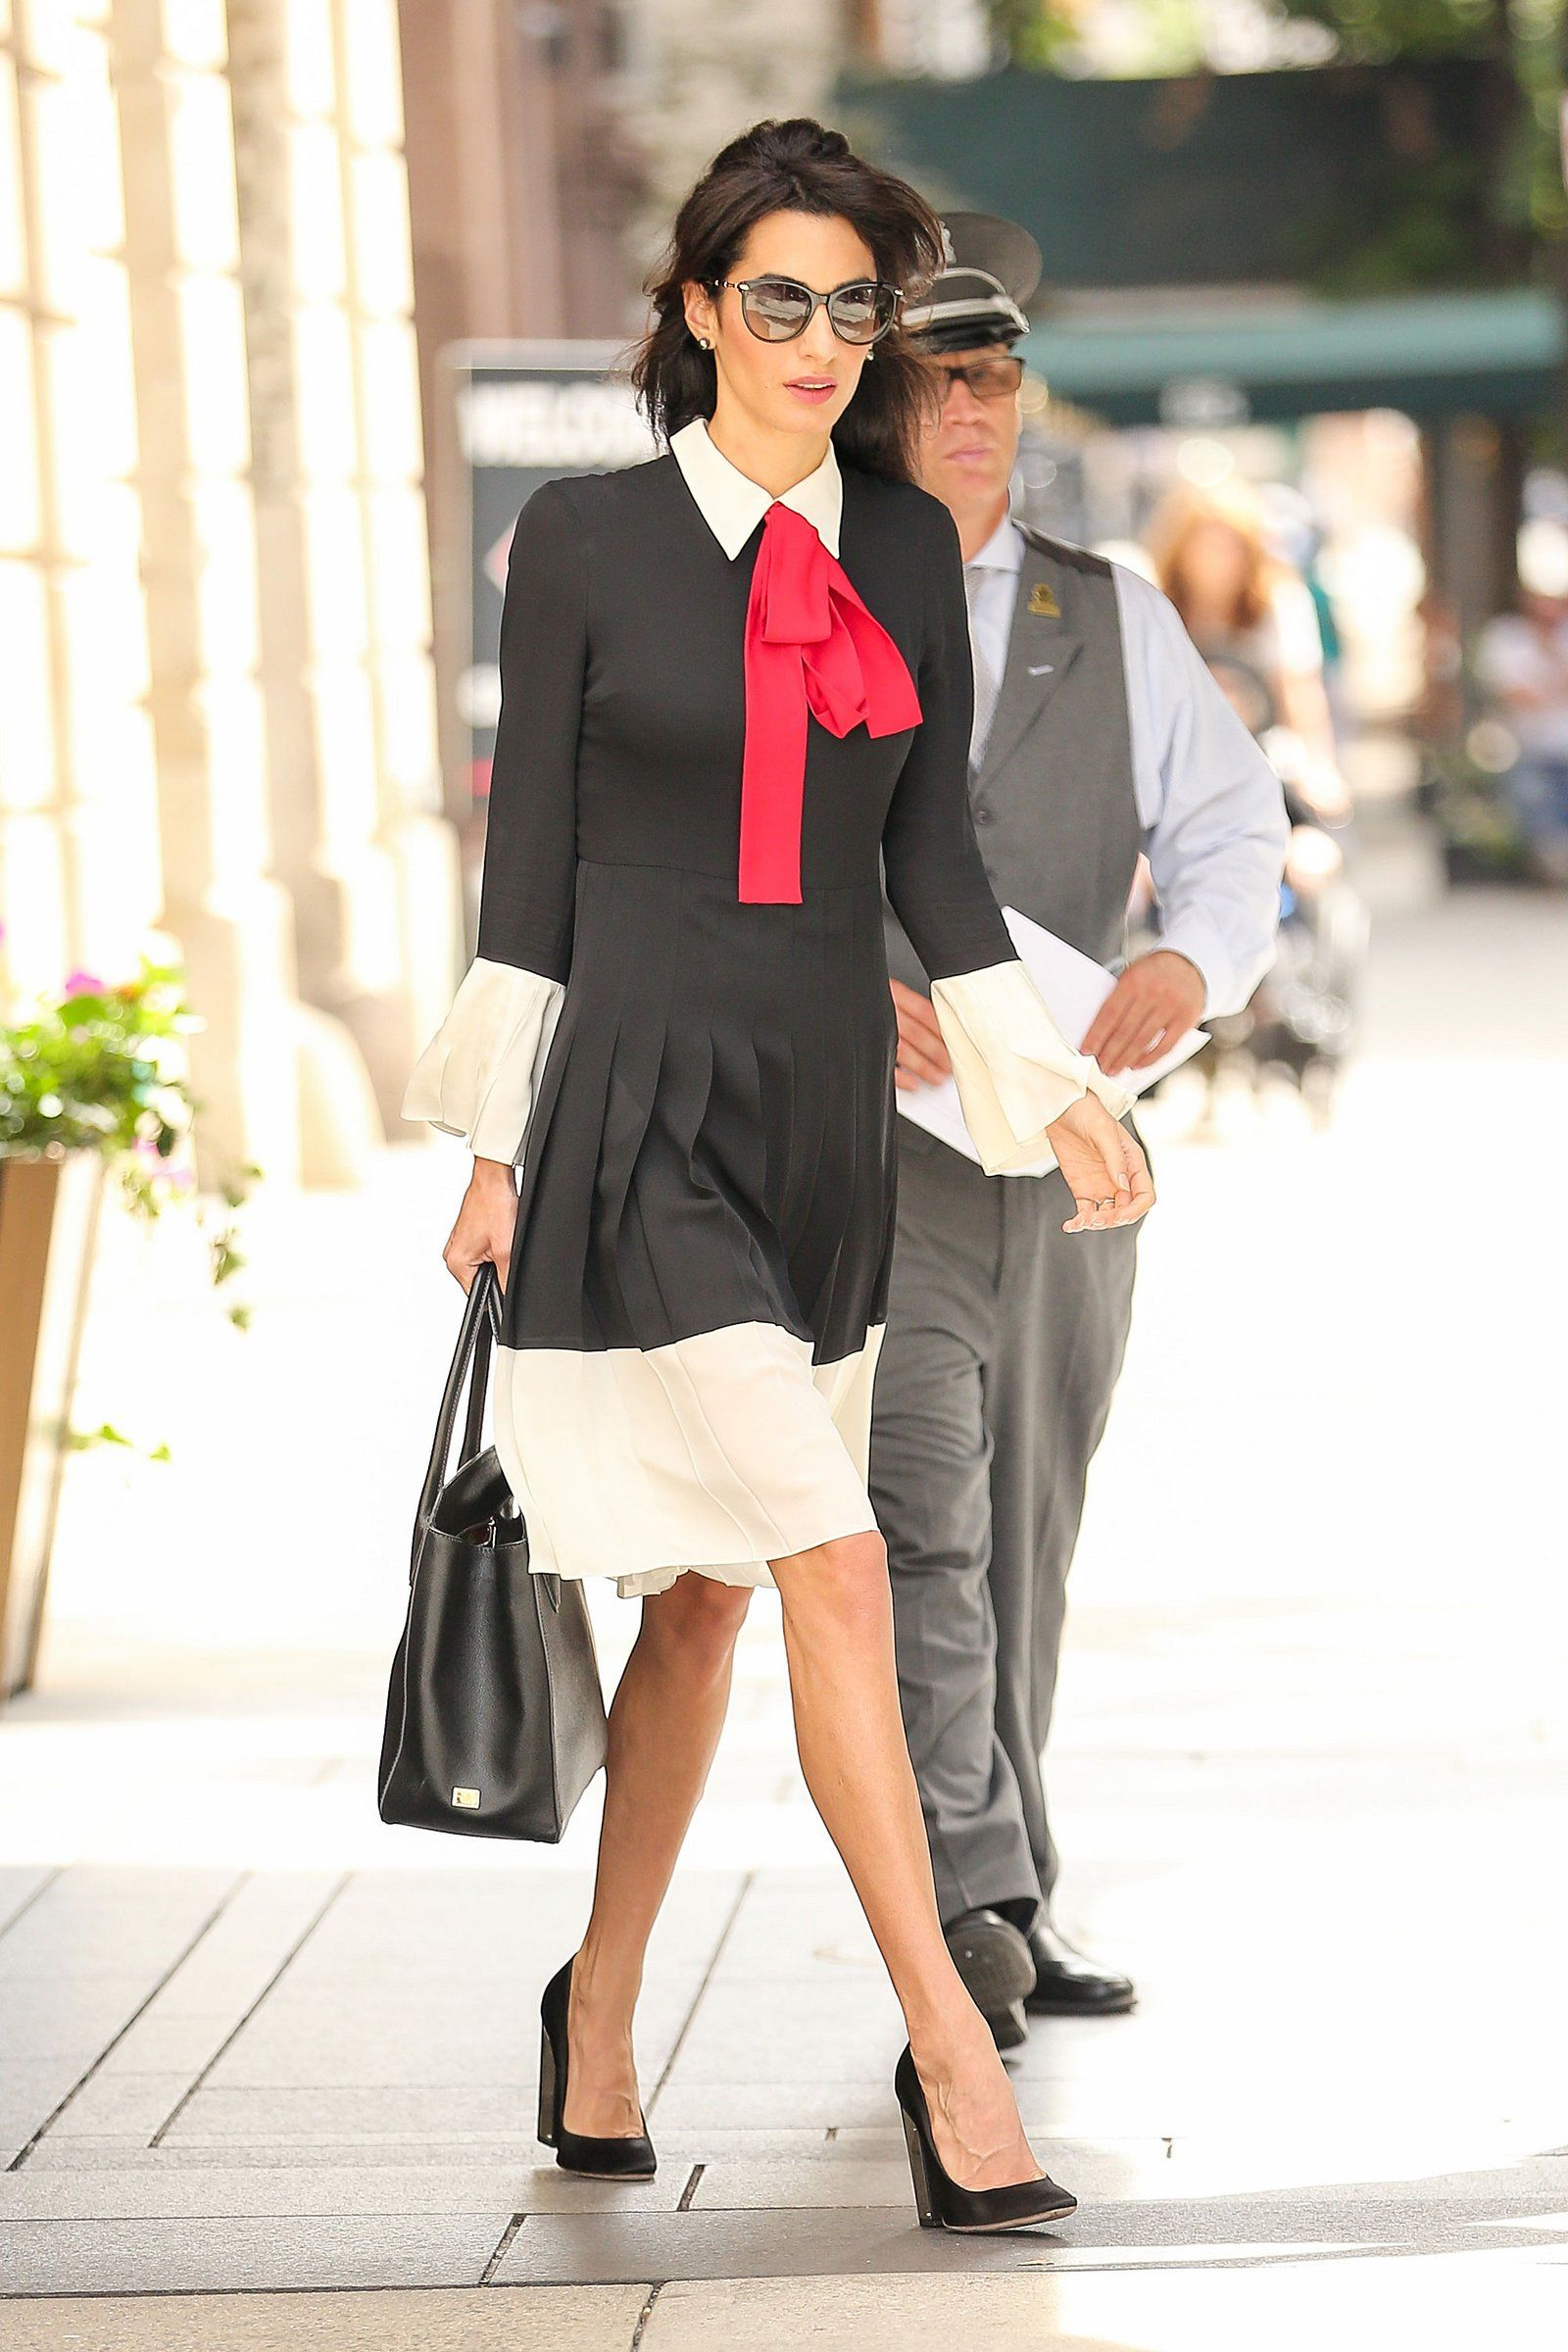 Amal Clooney in the Gucci pussy-bow dress.